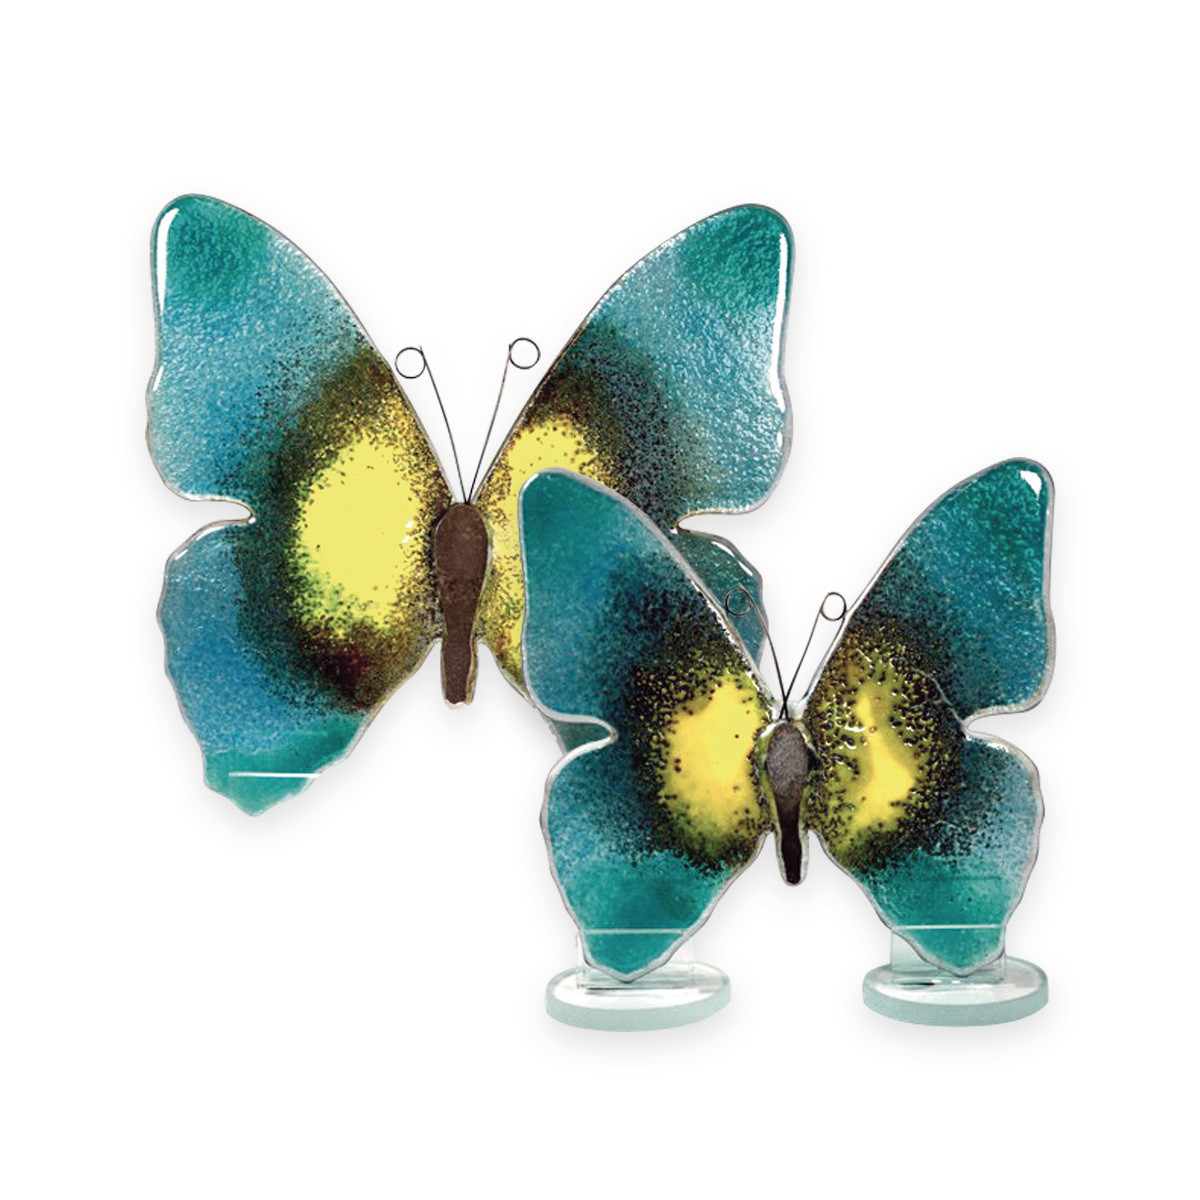 Nobile Glass Fused Glass Butterfly Teal Small